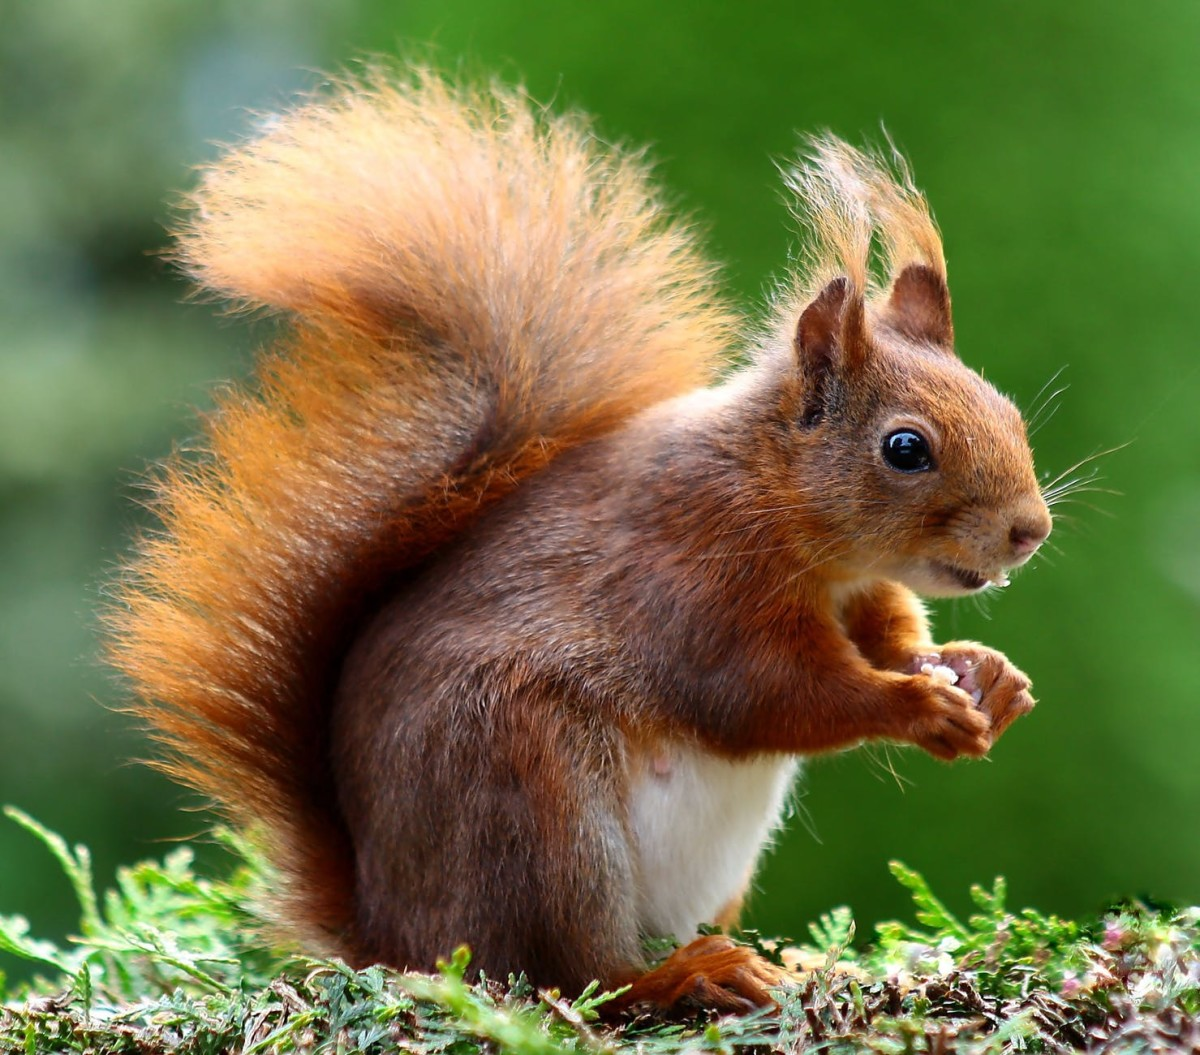 Squirrels: Nature's Mystery